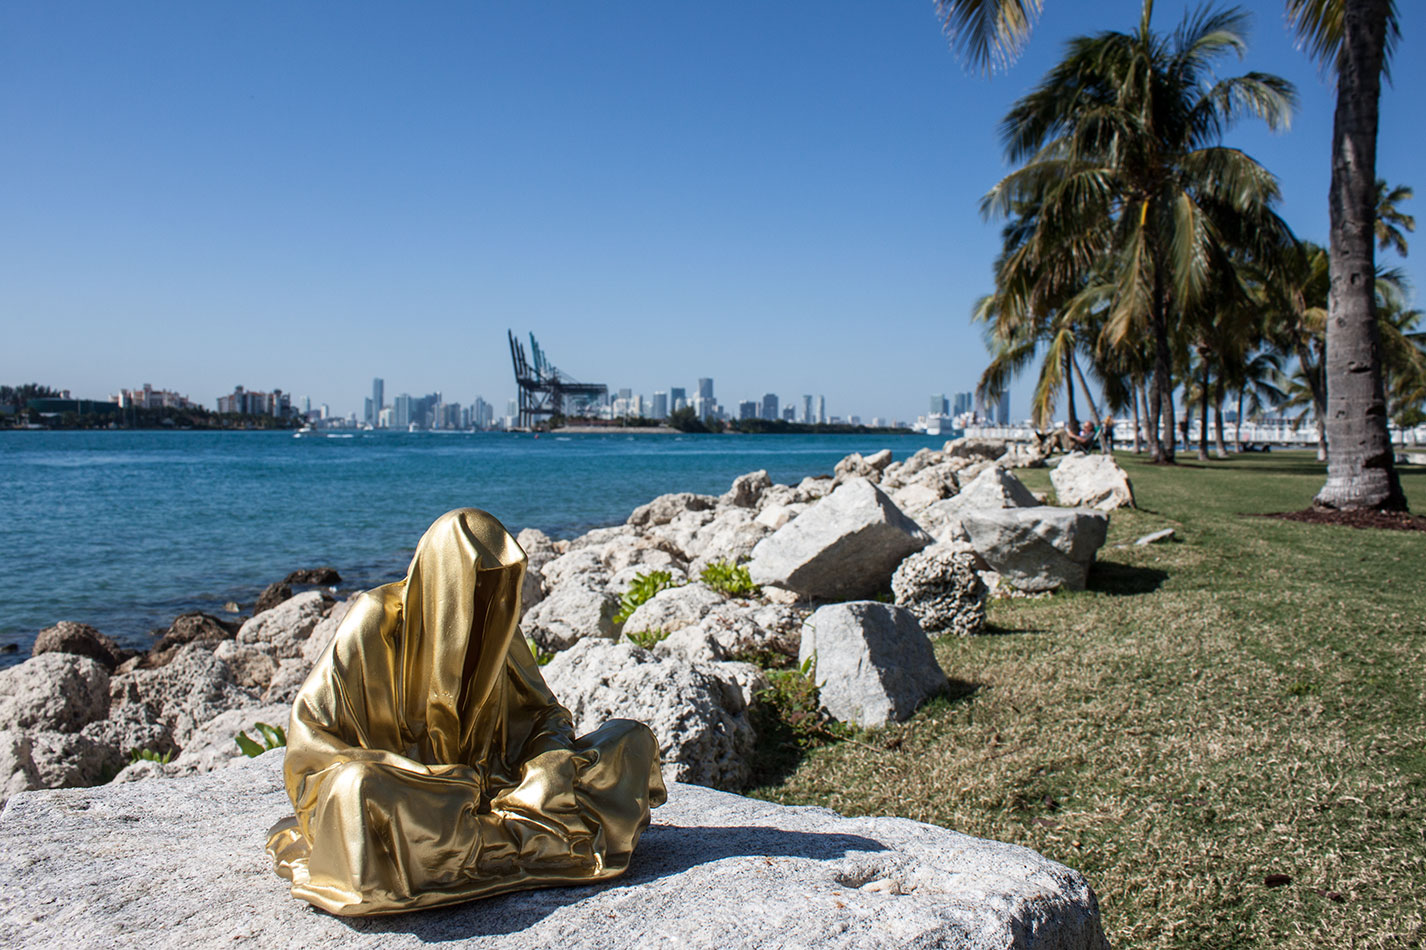 public-art-basel-miami-beach-fair-usa-florida-guardians-of-time-manfred-kili-kielnhofer-contemporary-fine-art-modern-arts-design-antiques-sculpture-6821